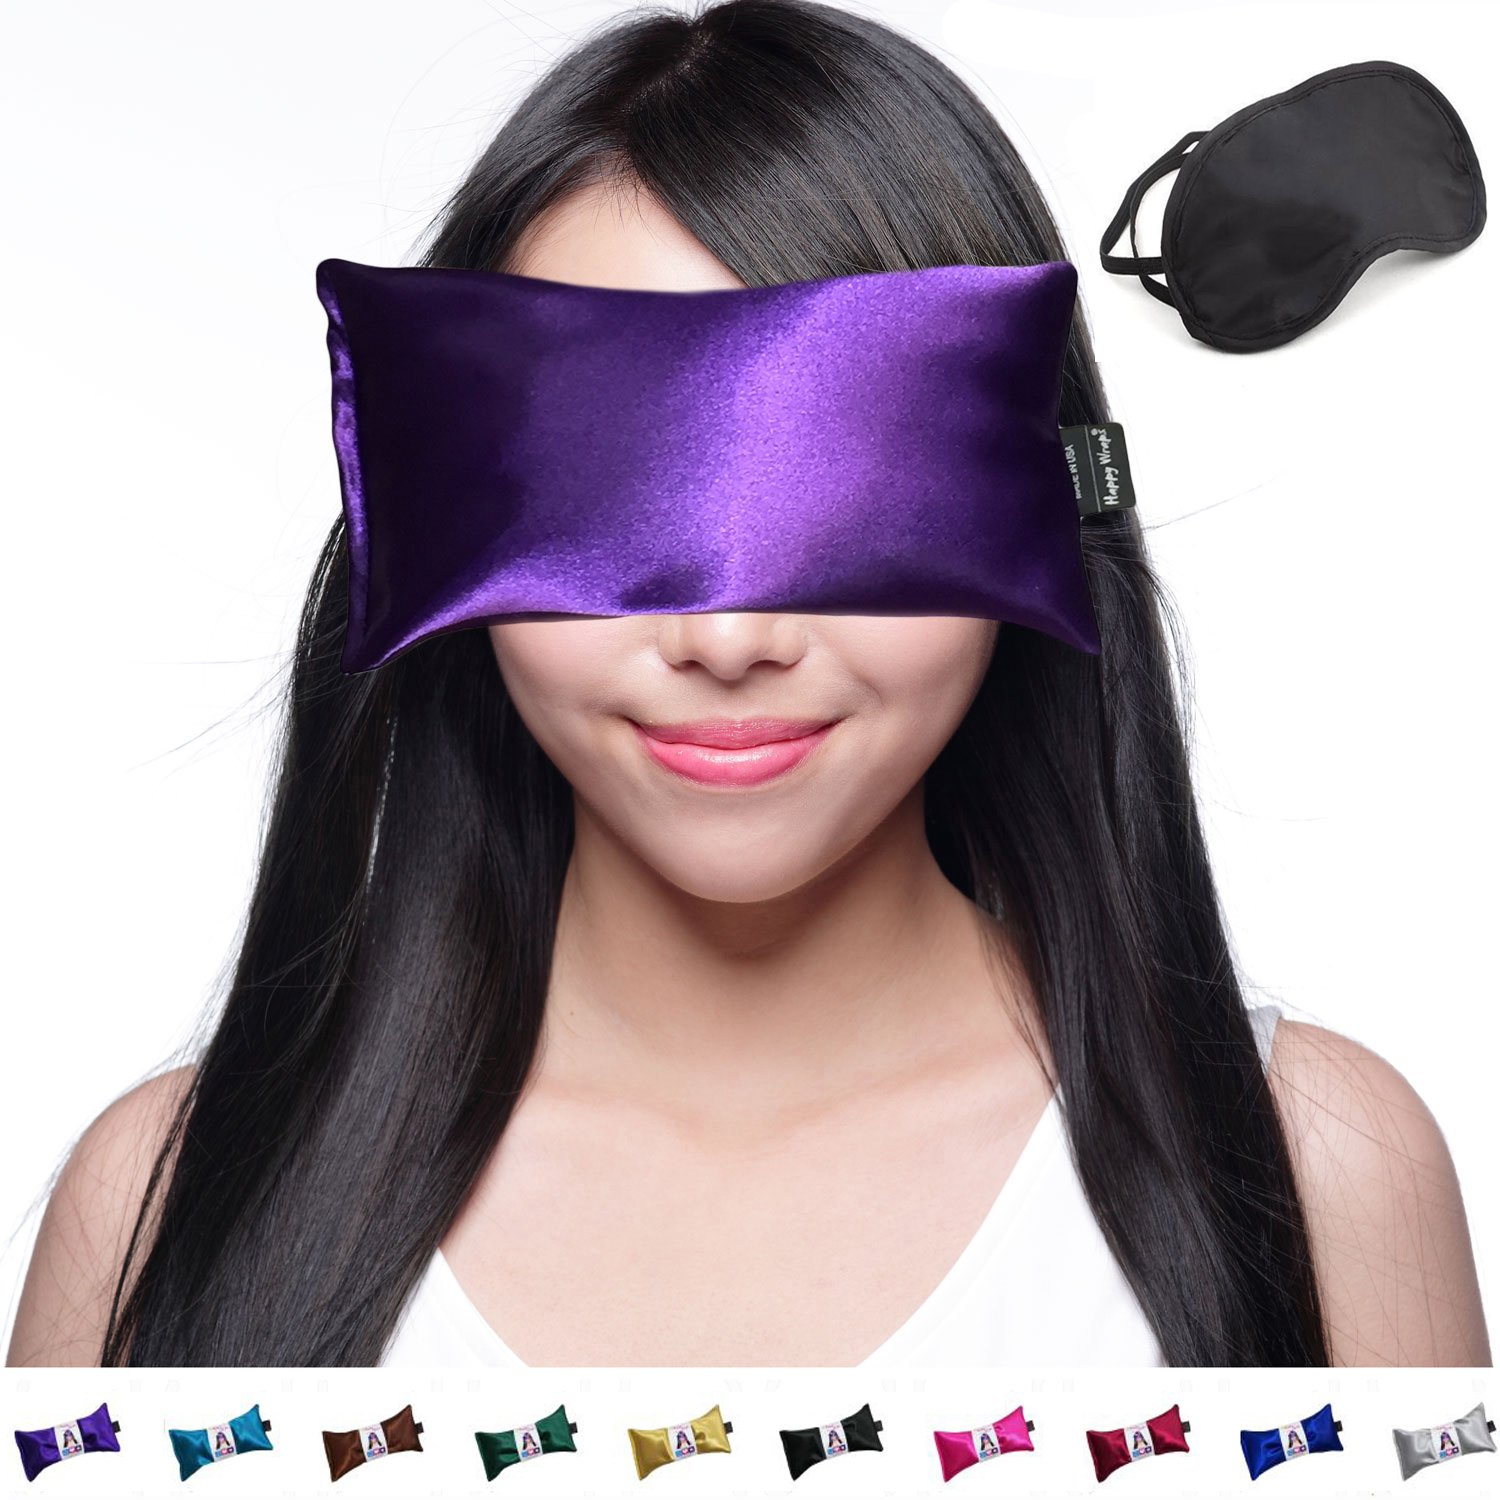 Happy Wraps Lavender Eye Pillow - Weighted Hot Cold Aromatherapy Lavender Eye Pillows for Yoga Sleeping Migraines Pain Stress Relief - Gifts for Christmas, Employees, Women - FREE Eye Mask - Amethyst by Happy Wraps